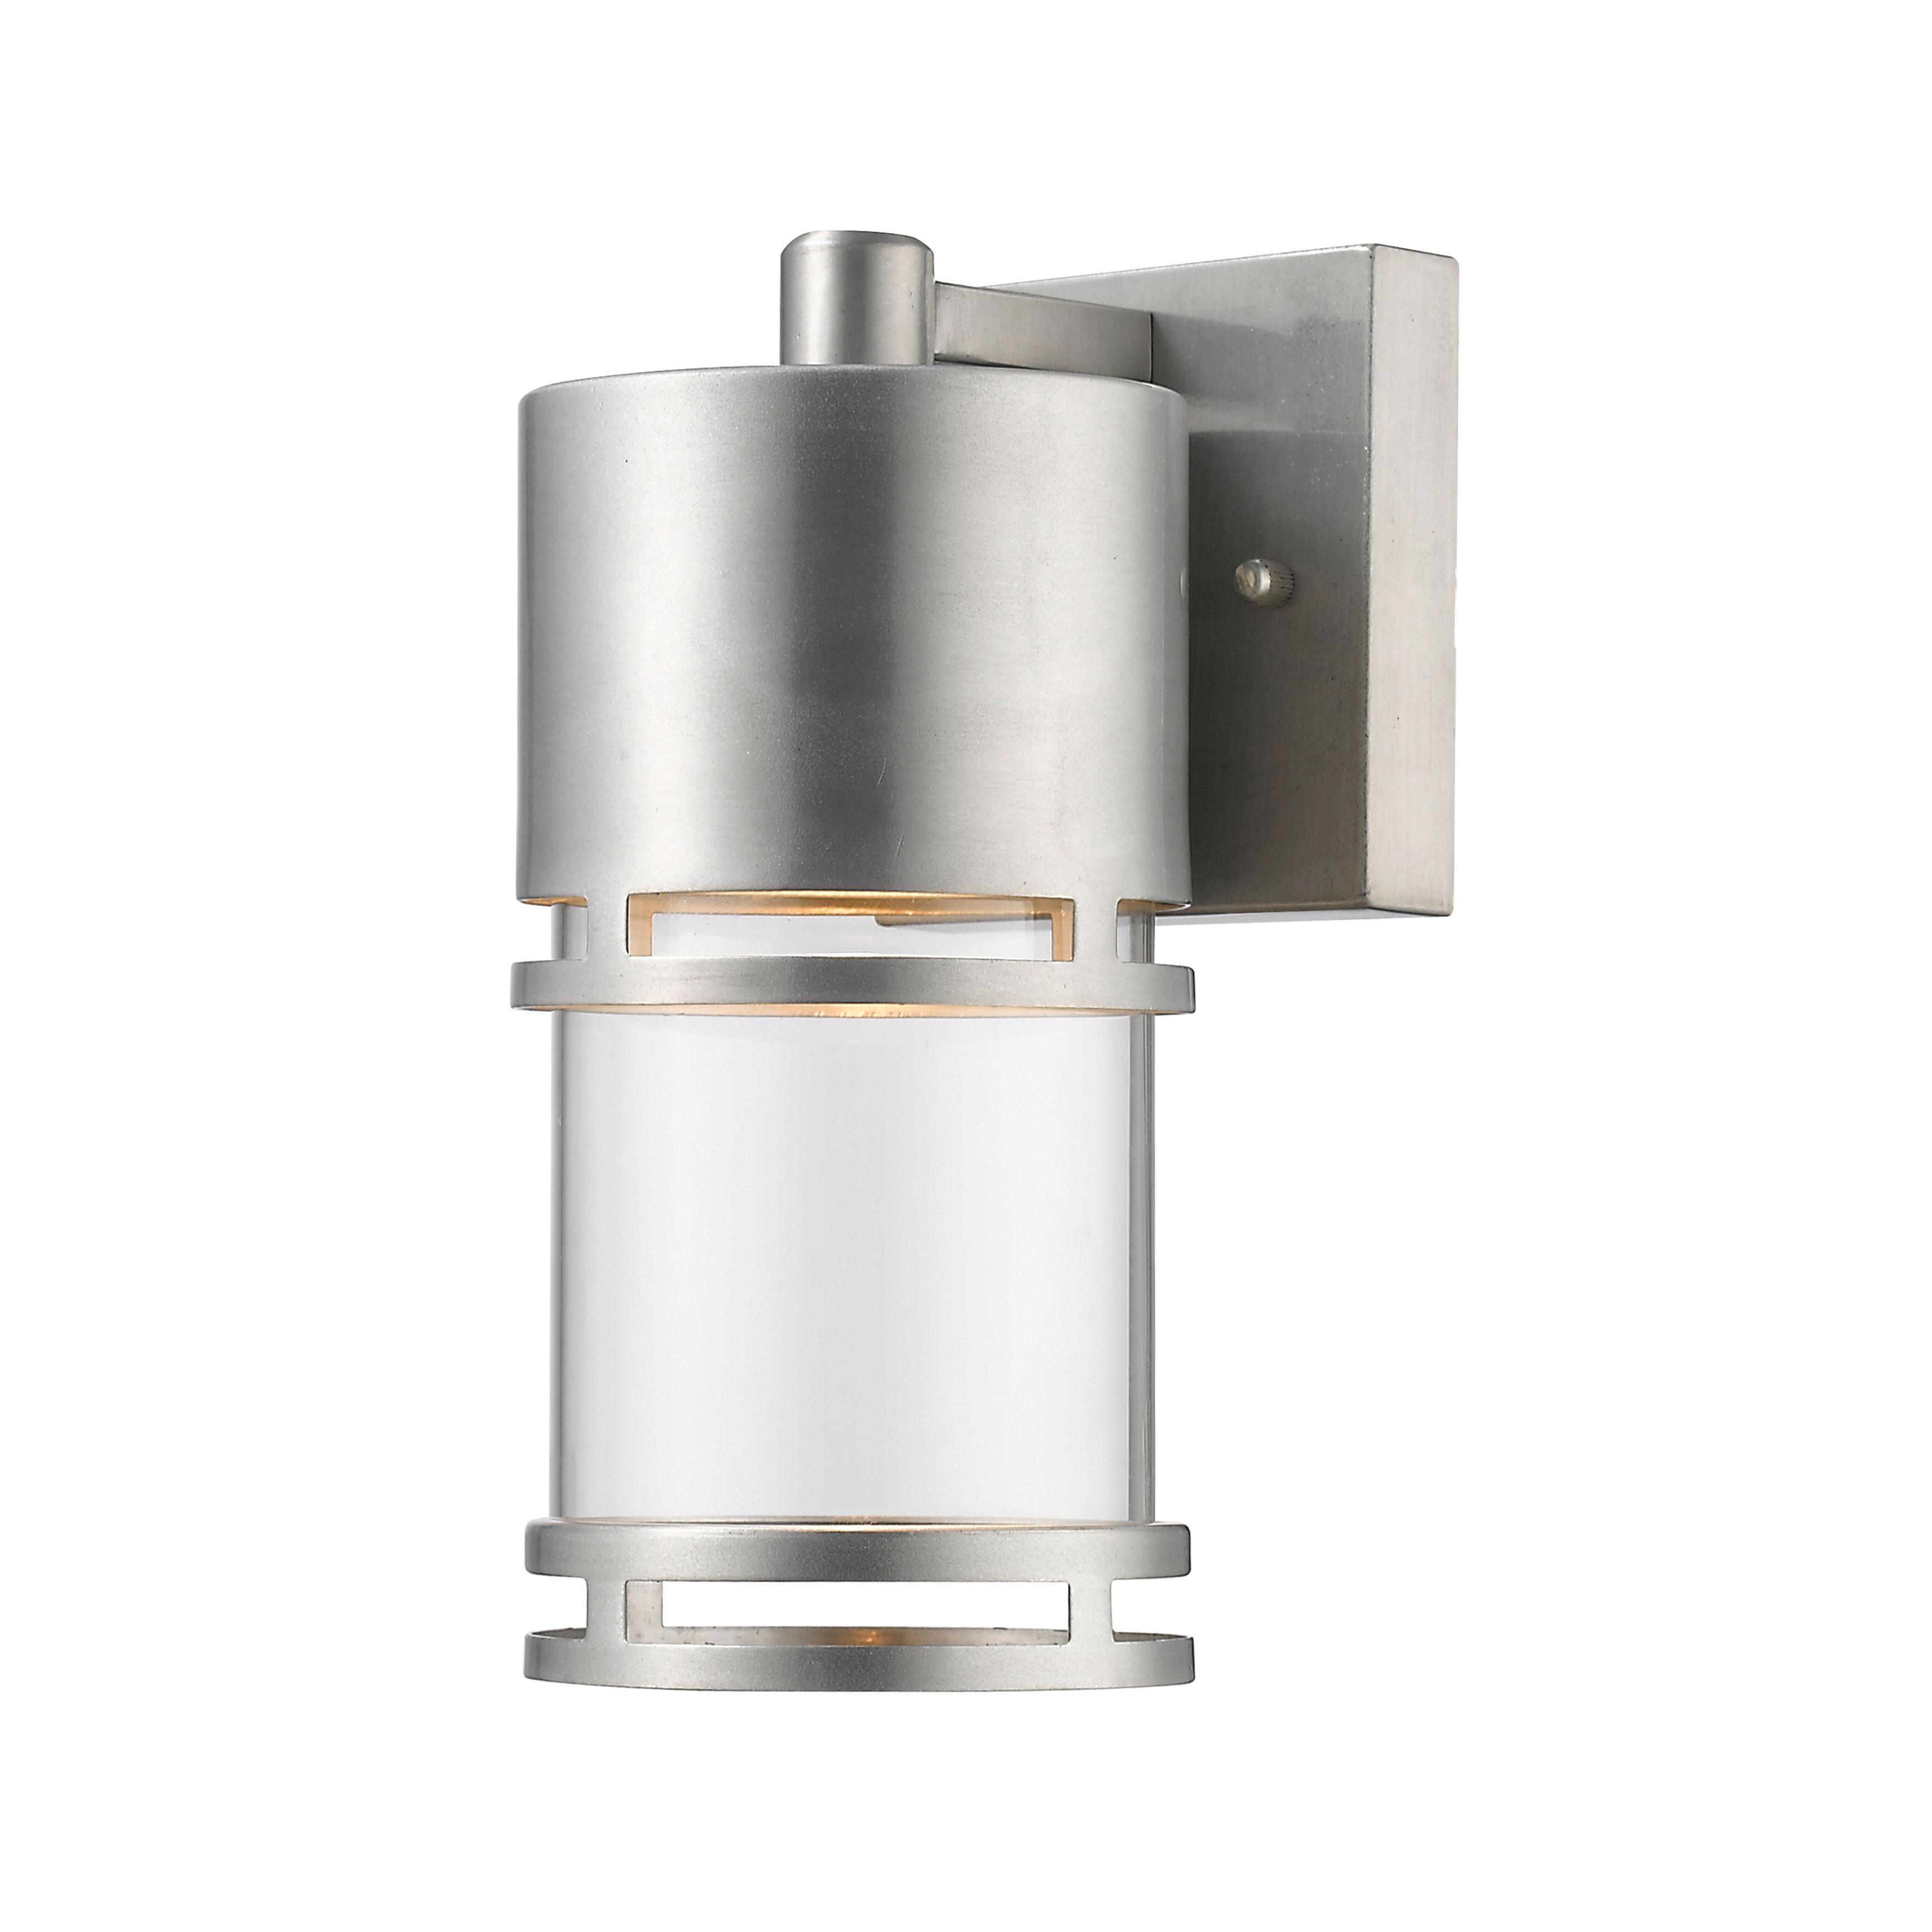 Zlite luminata outdoor led wall light in brushed aluminum silver